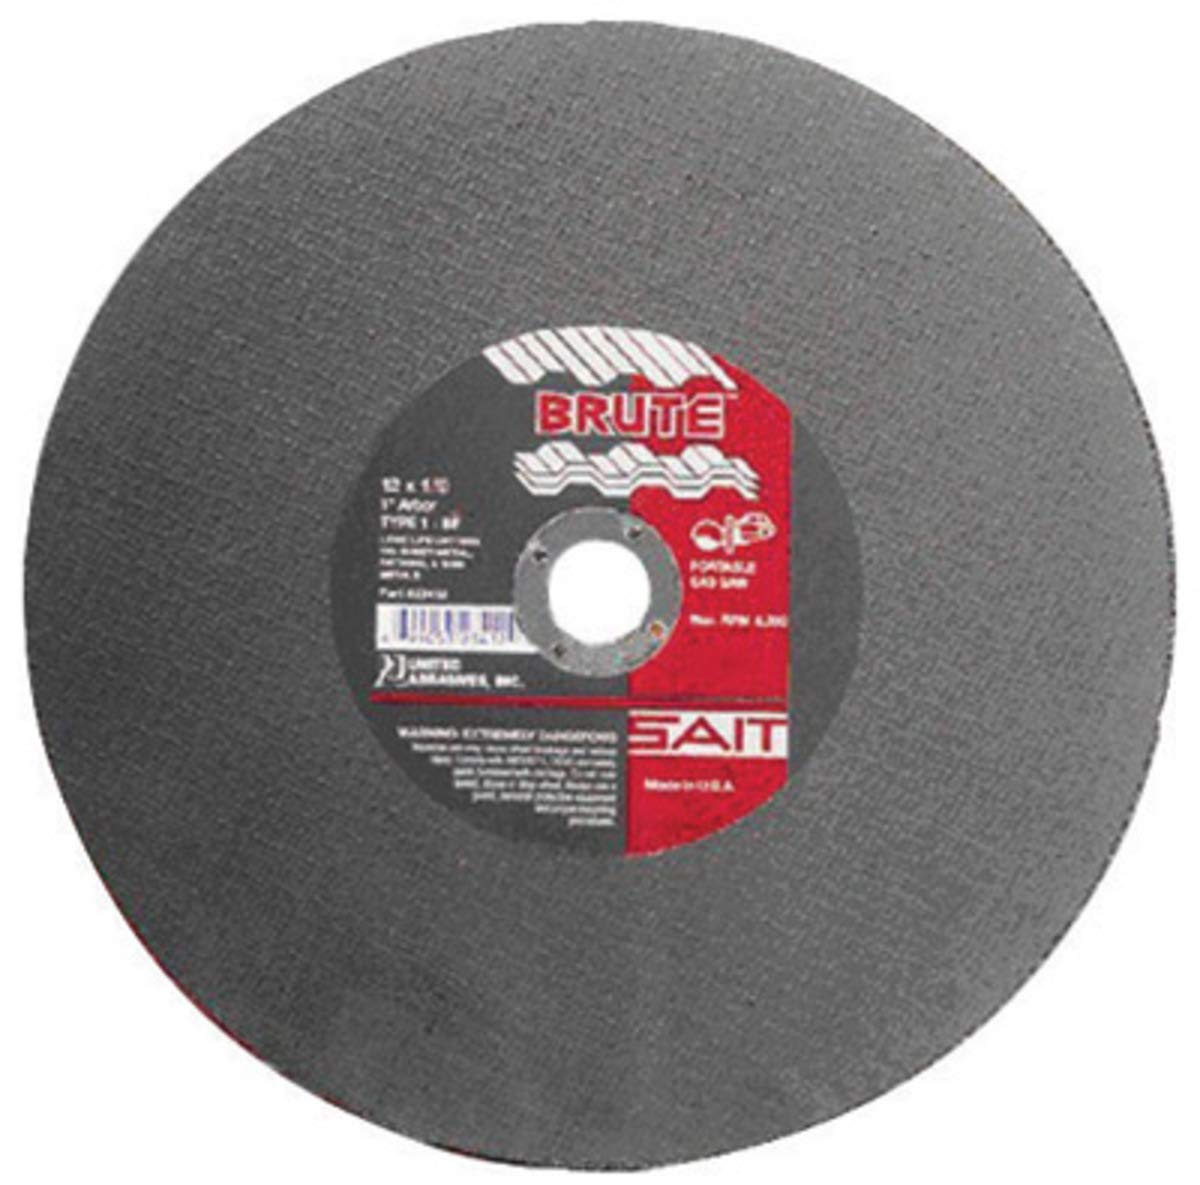 United Abrasives 12'' X 1/8'' X 1'' Brute Proprietary Blend Type 1 Cut Off Wheel, Package Size: 10 Each by United Abrasives Inc.